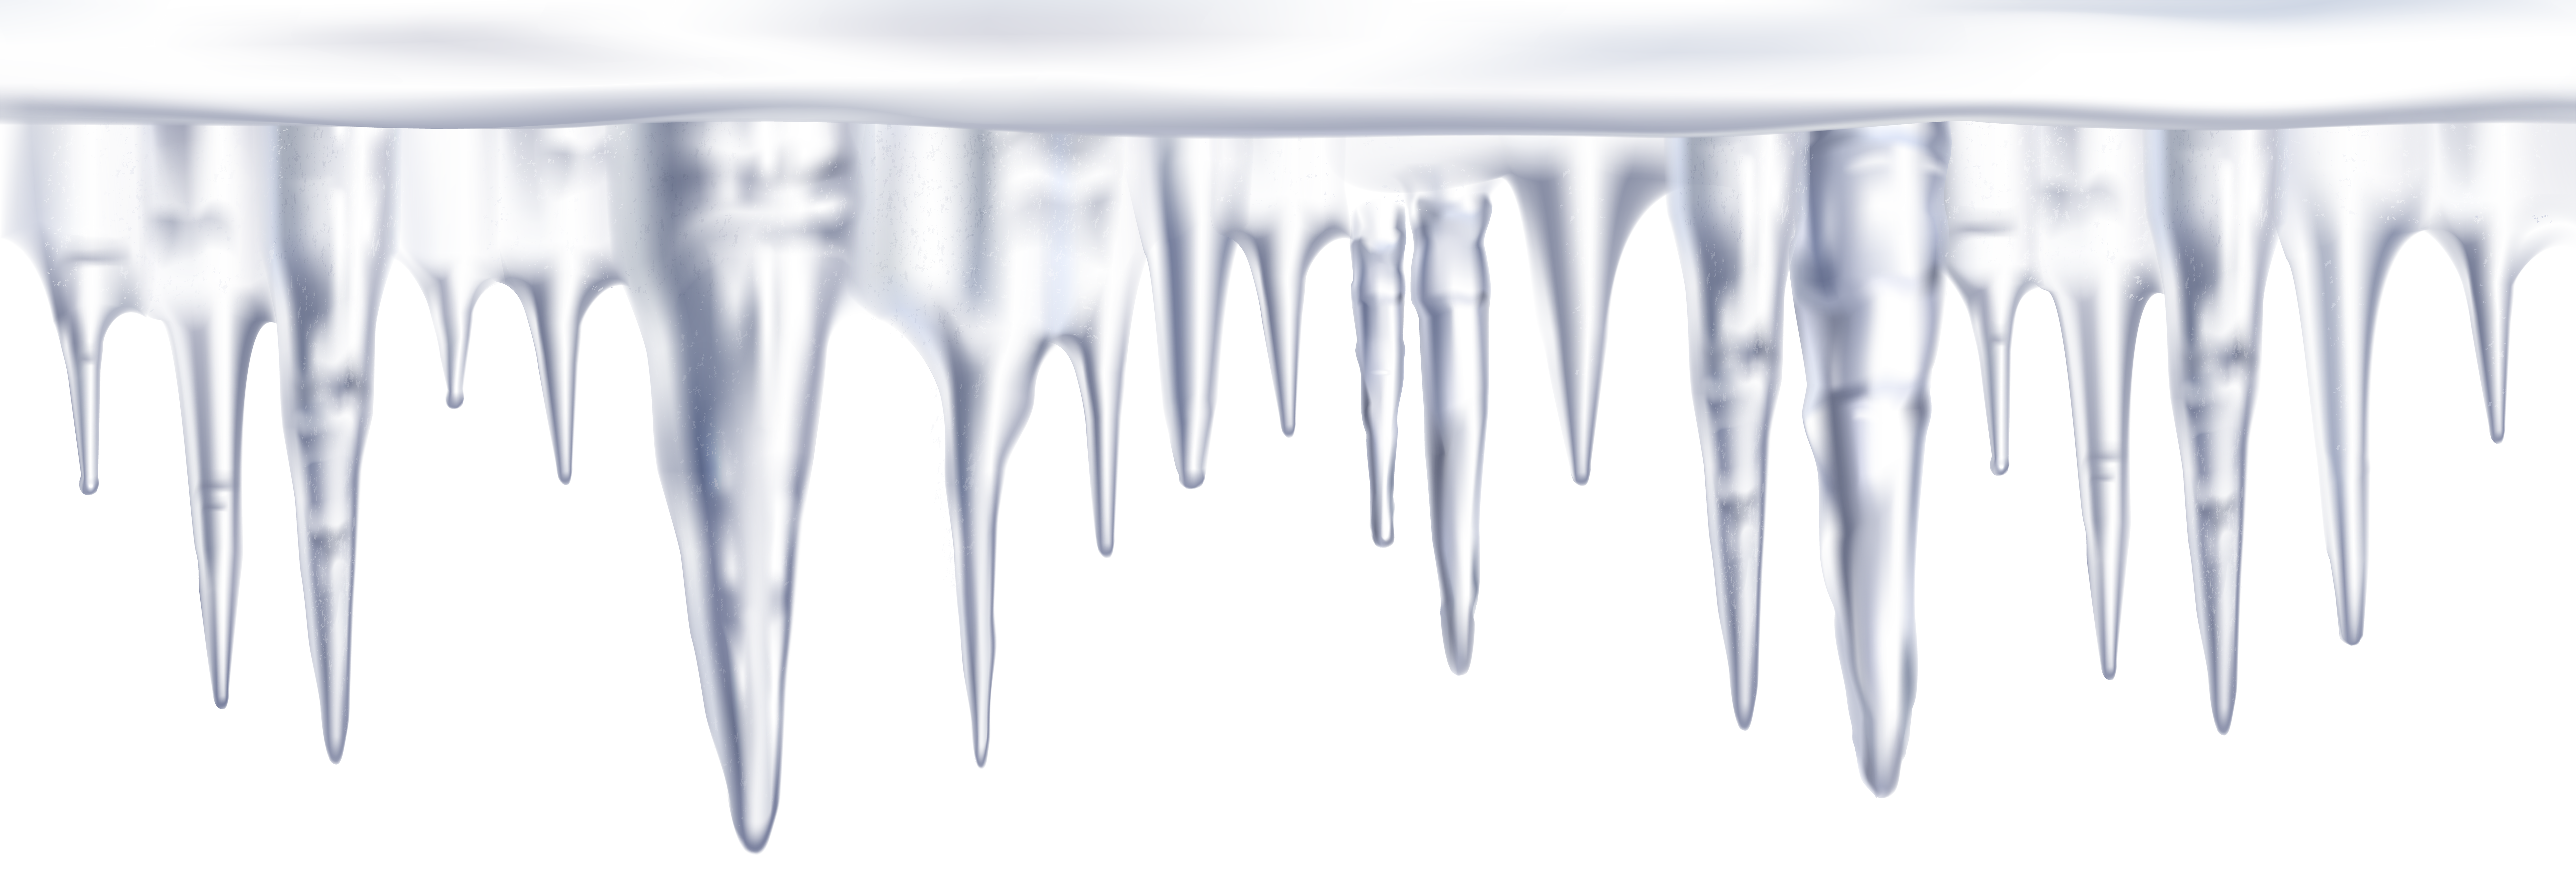 Icicles clipart frost. Icicle clip art transparent